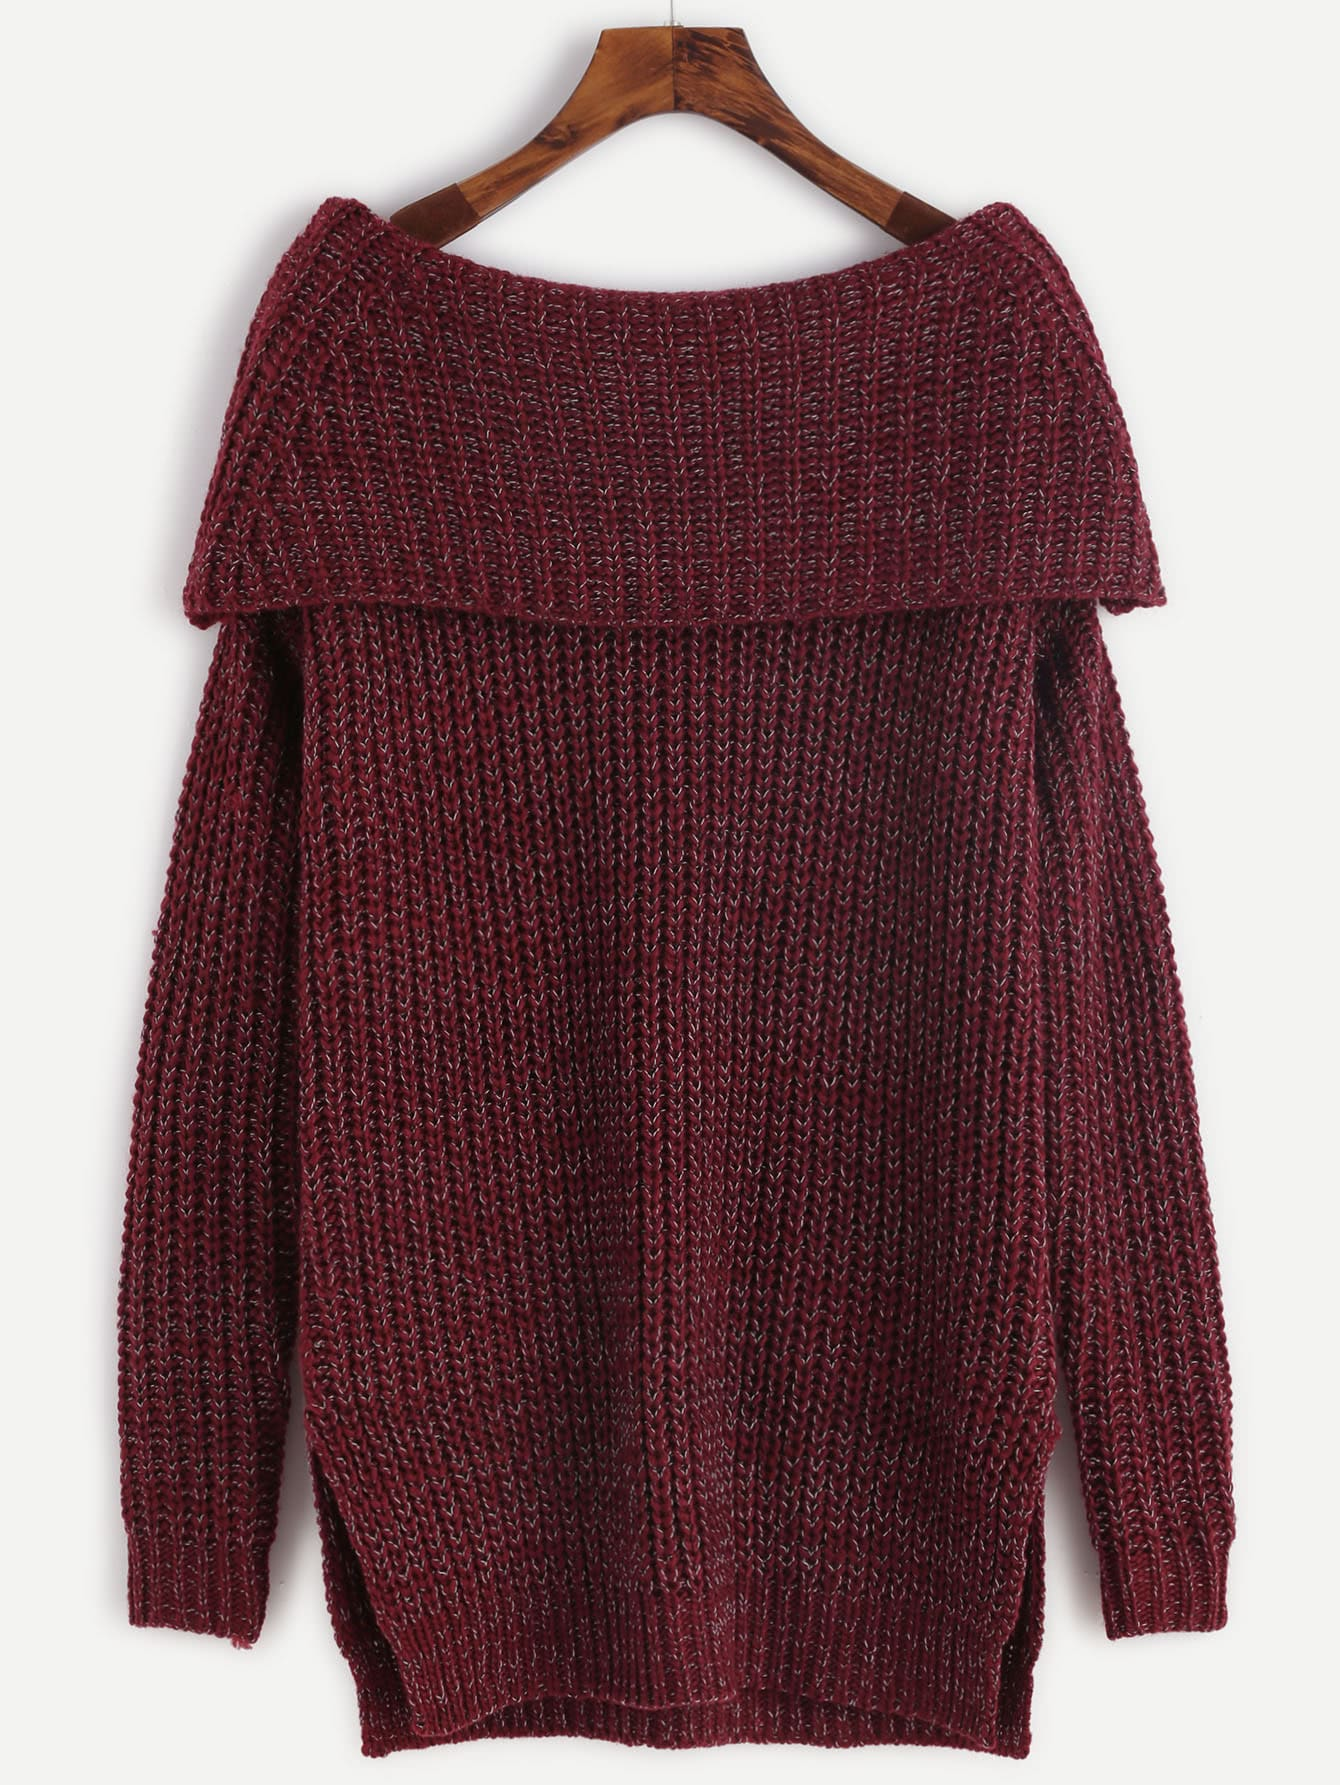 Burgundy Marled Knit Foldover Off The Shoulder Slit Sweater sweater161020456